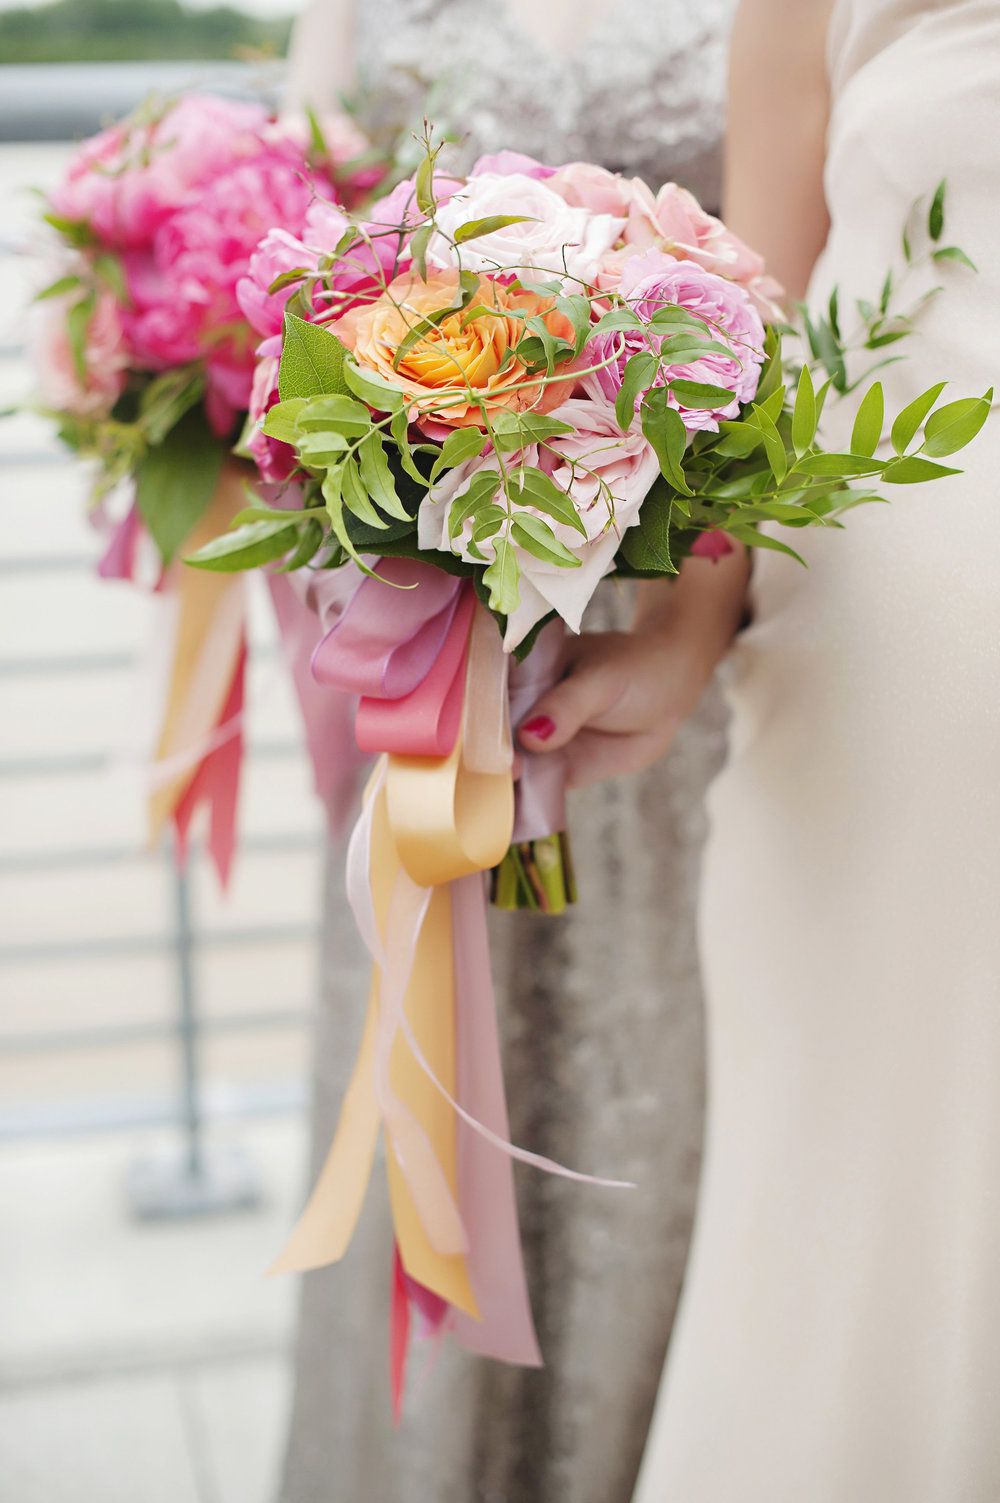 Colorful Bridesmaid Bouquet at Hilton Netherlands Plaza